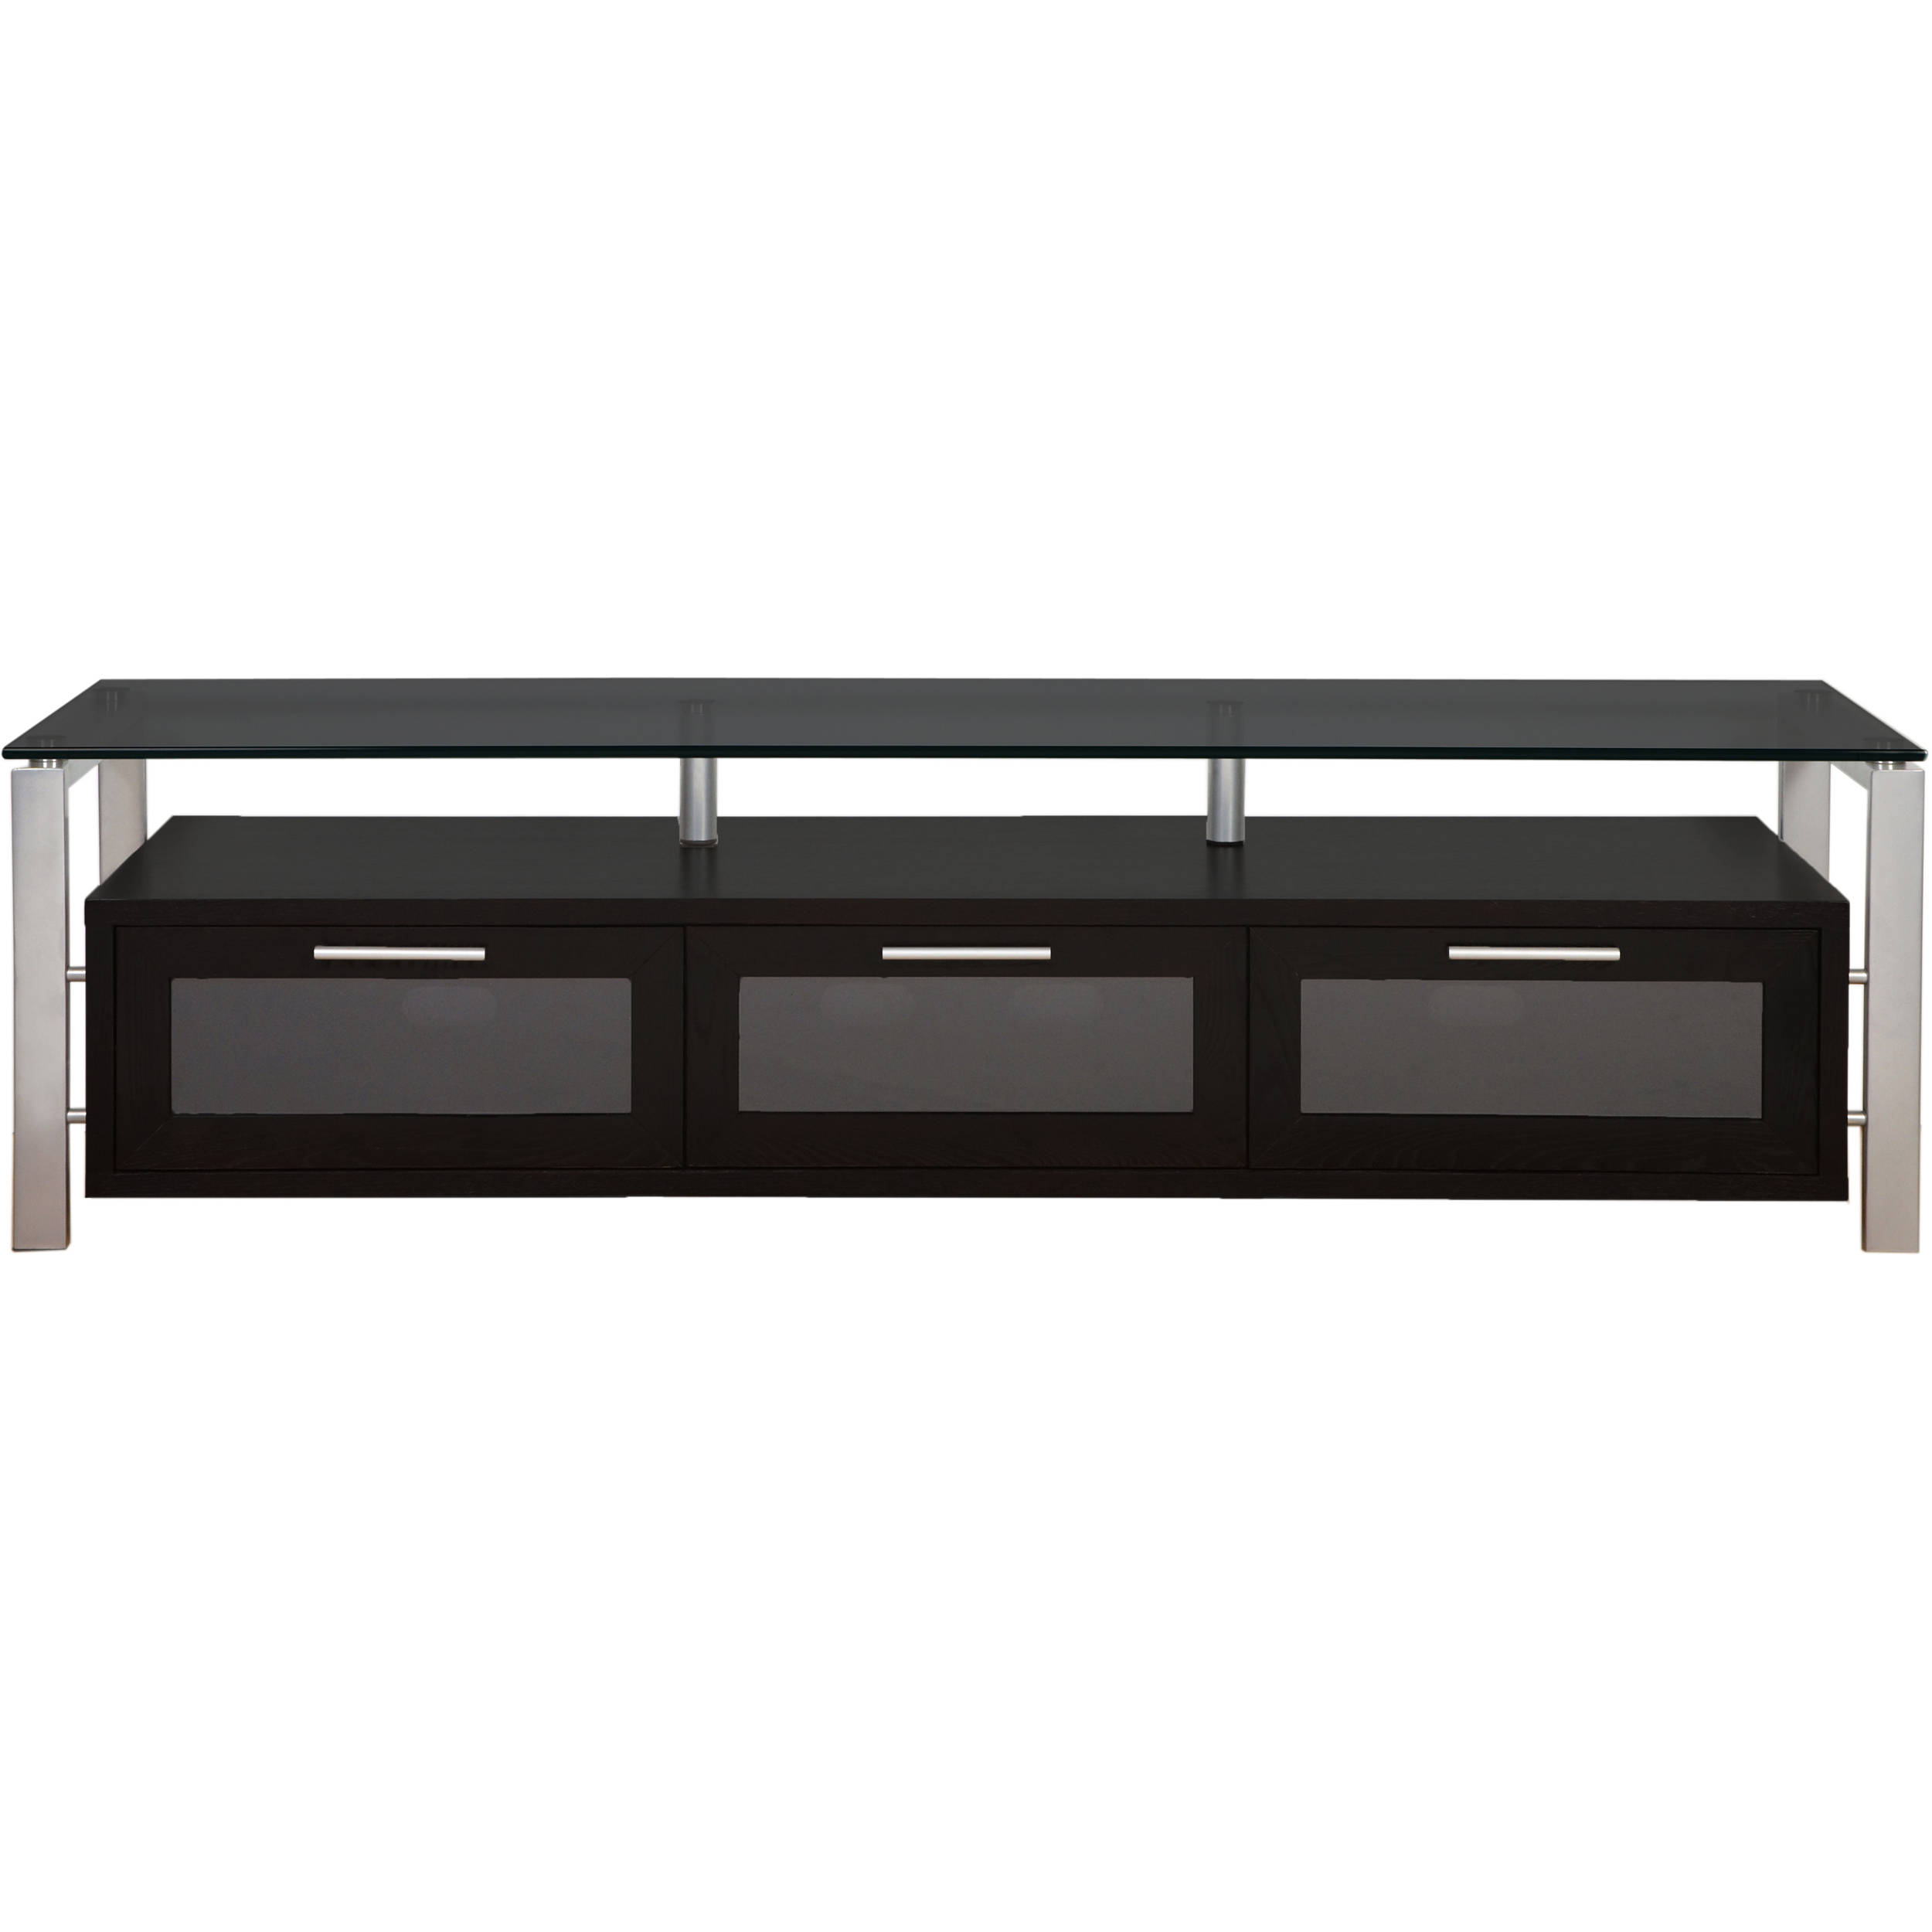 Plateau Decor 71 Tv Stand Decor 71 B S Bg B H Photo Video